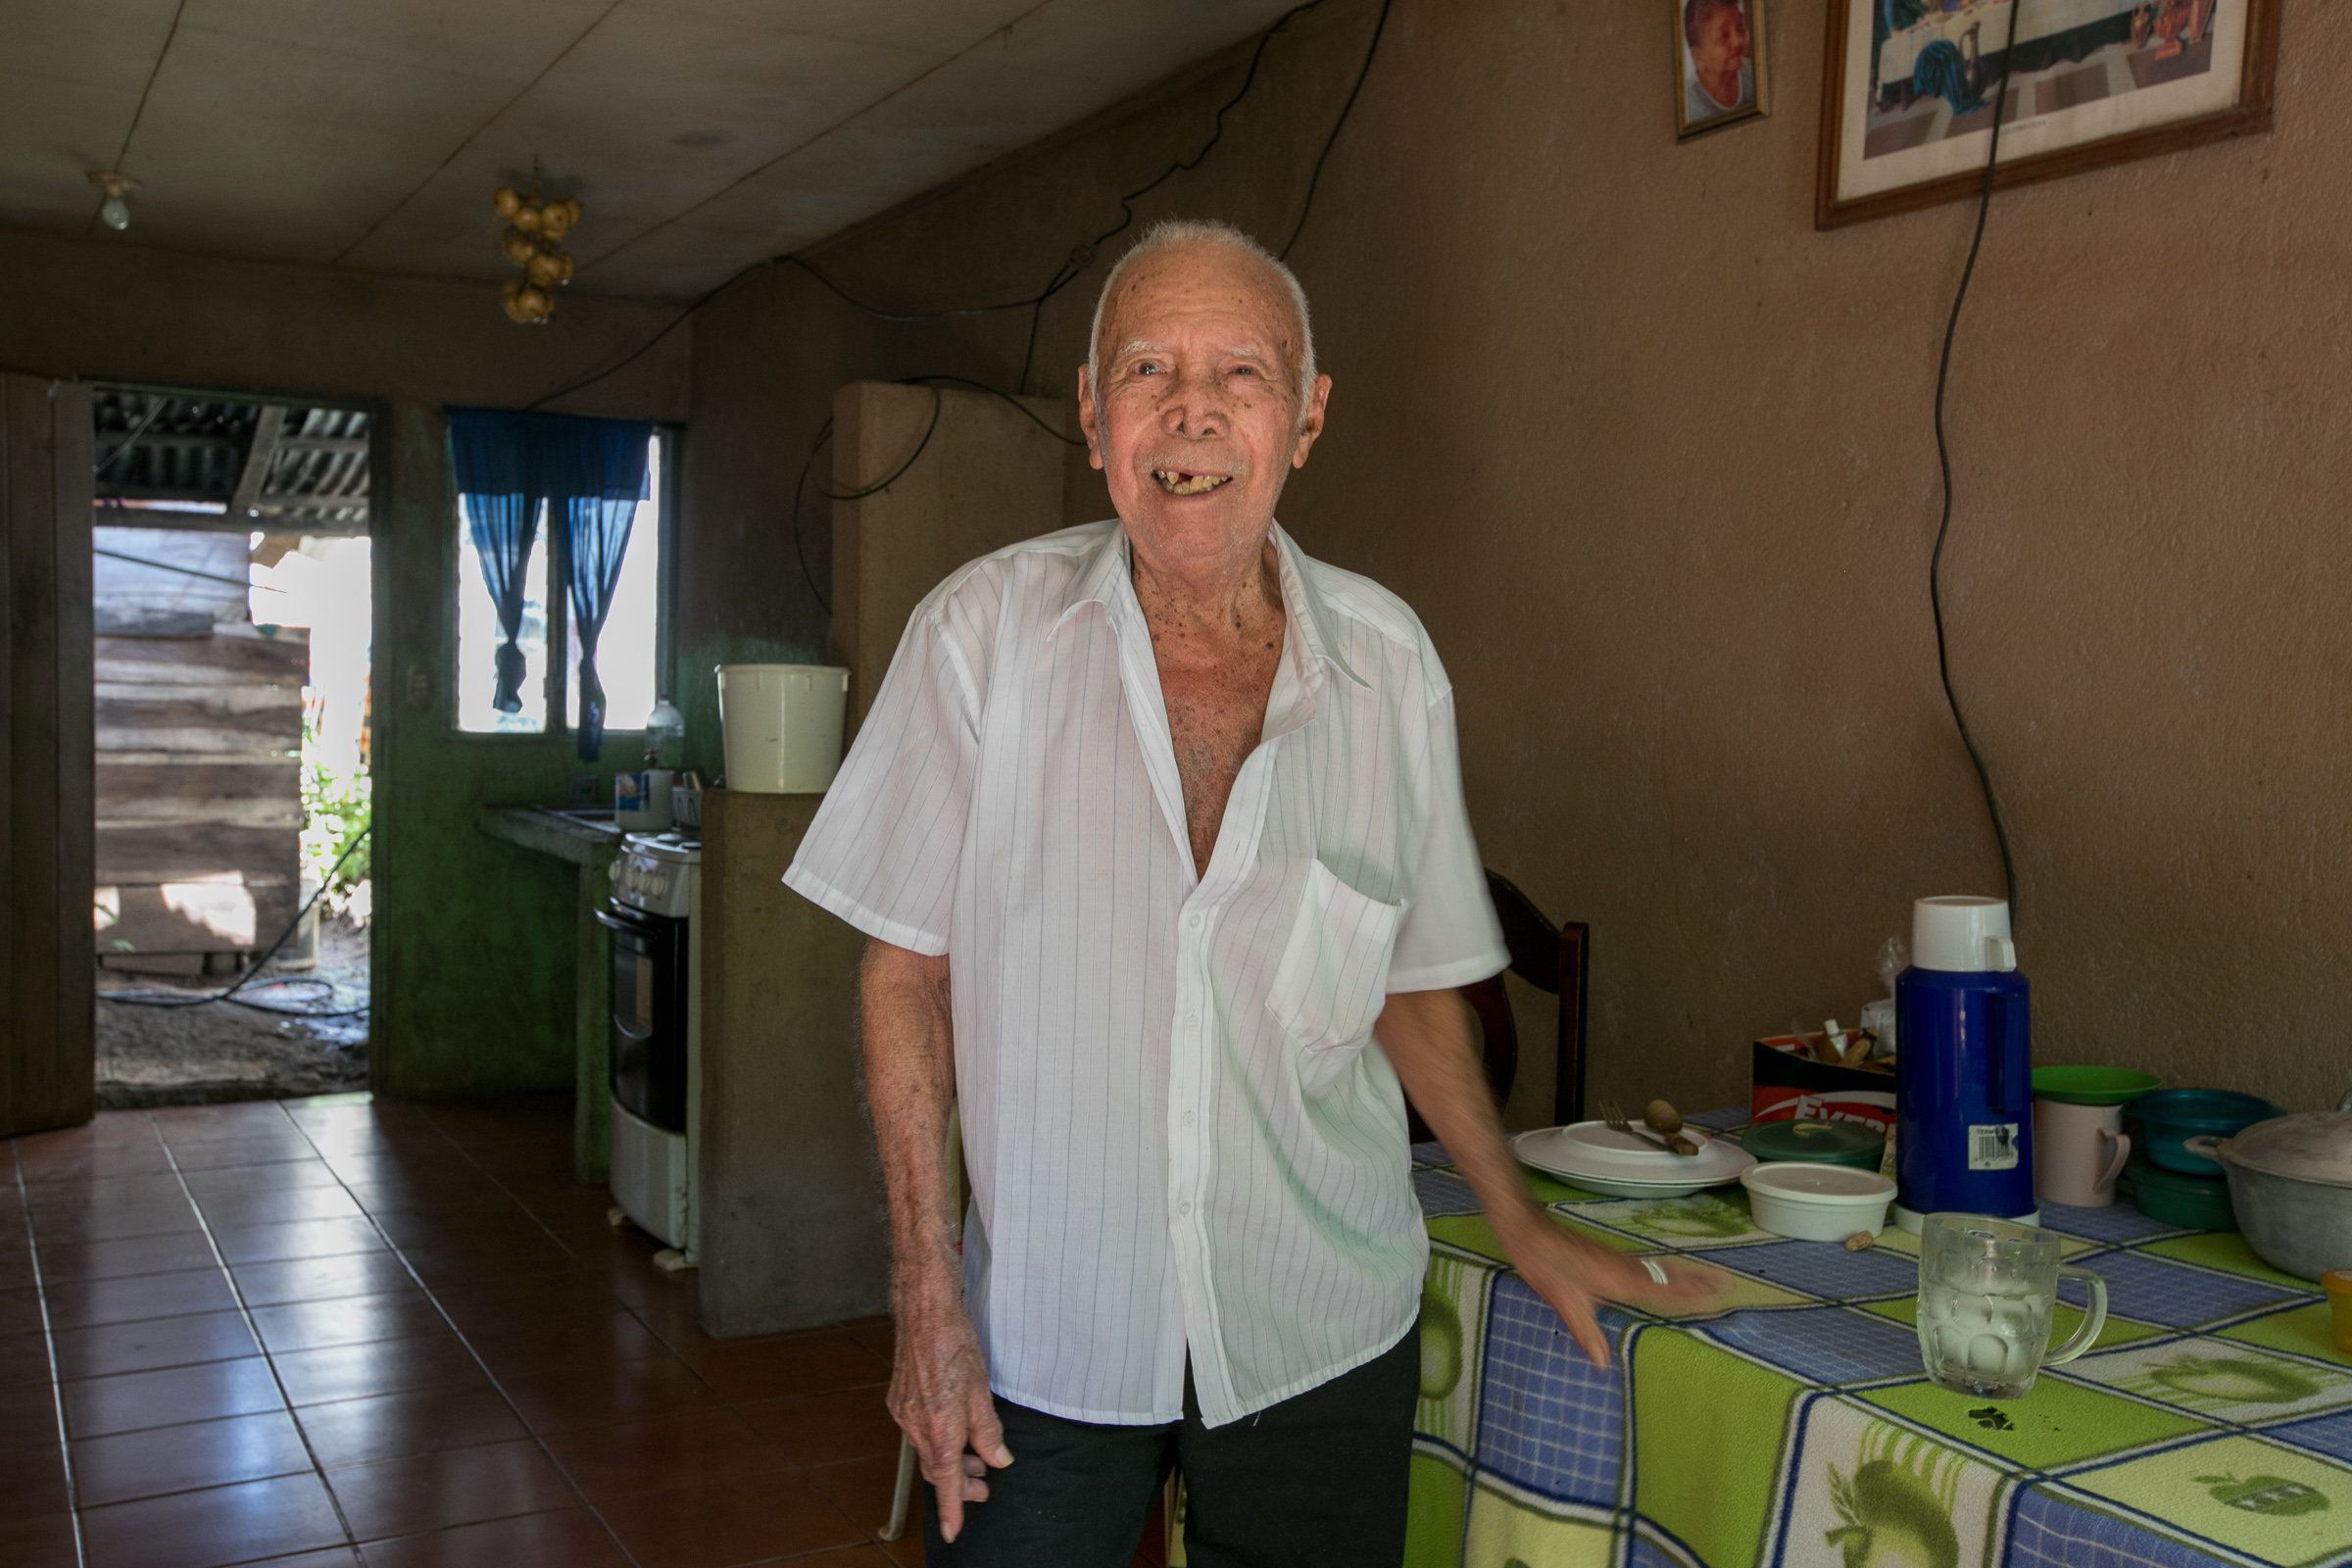 Francisco Gomezturned 100 in April. Photographed at his house in Nicoya, Guancaste, Costa Rica.